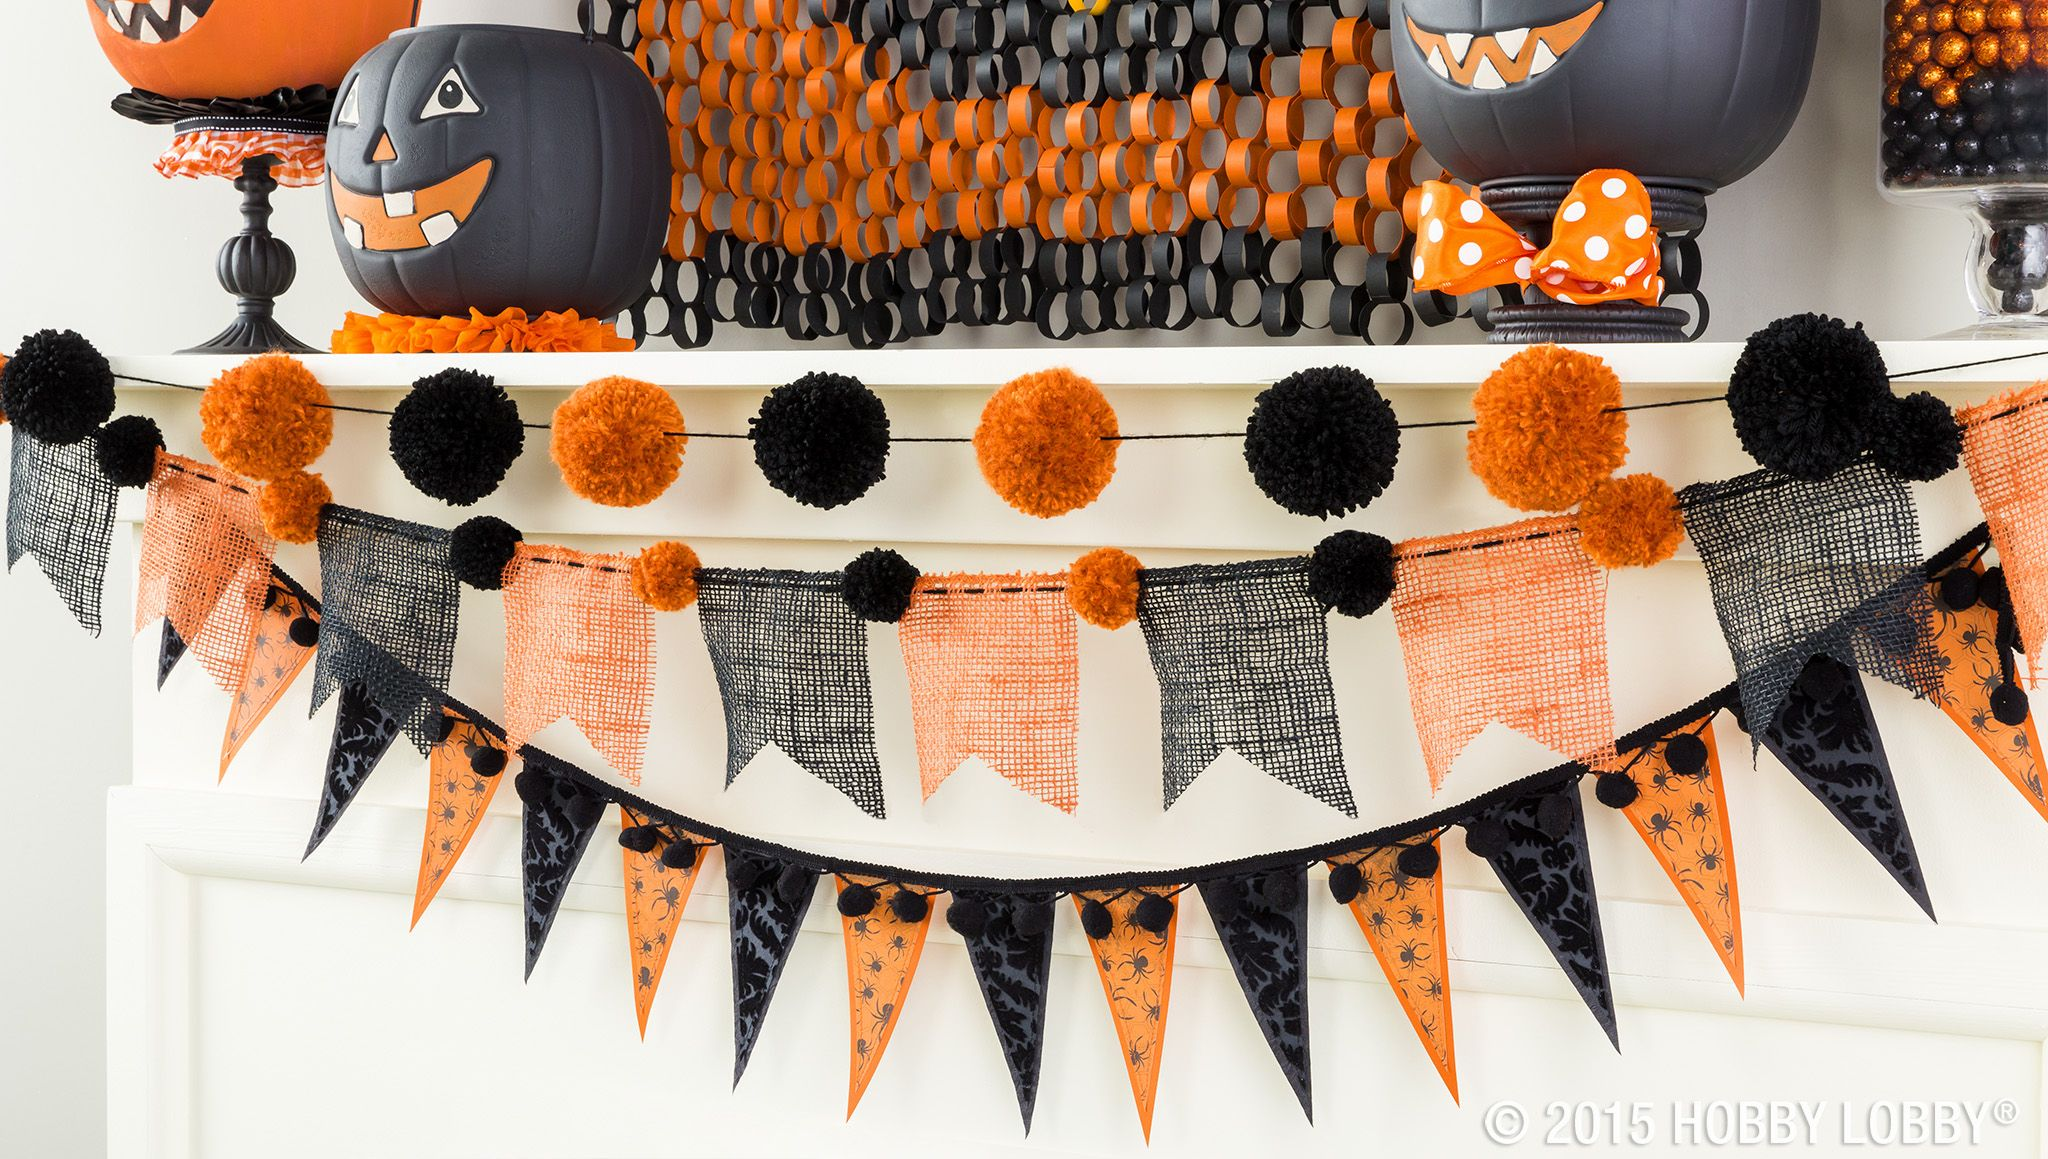 Burlap, scrapbook paper and homemade pom poms make up this marvelous - Hobby Lobby Halloween Decorations